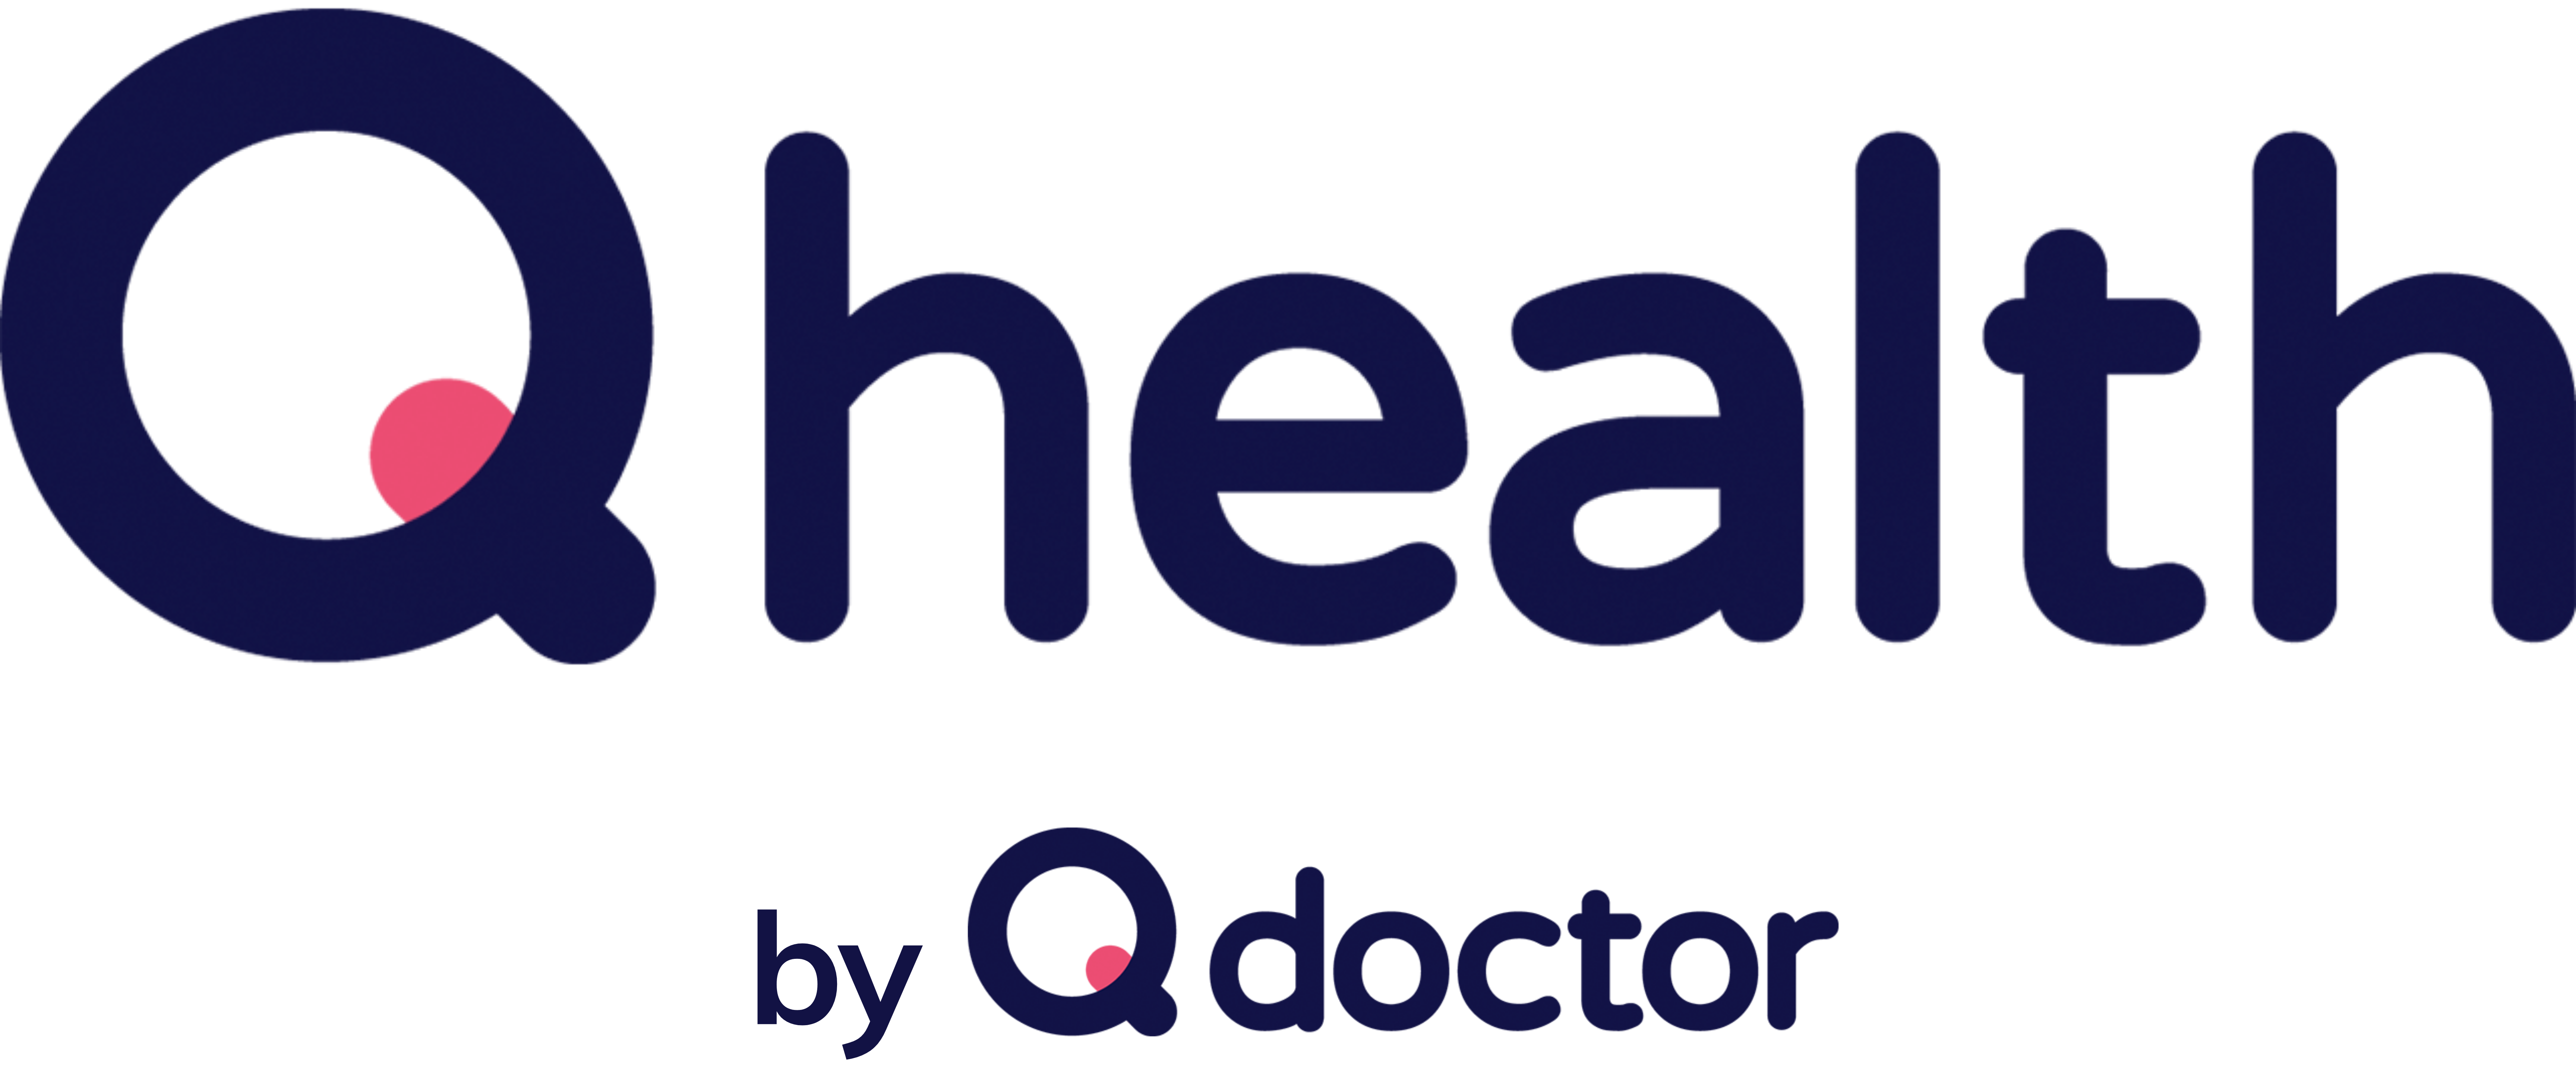 Q health by Q doctor